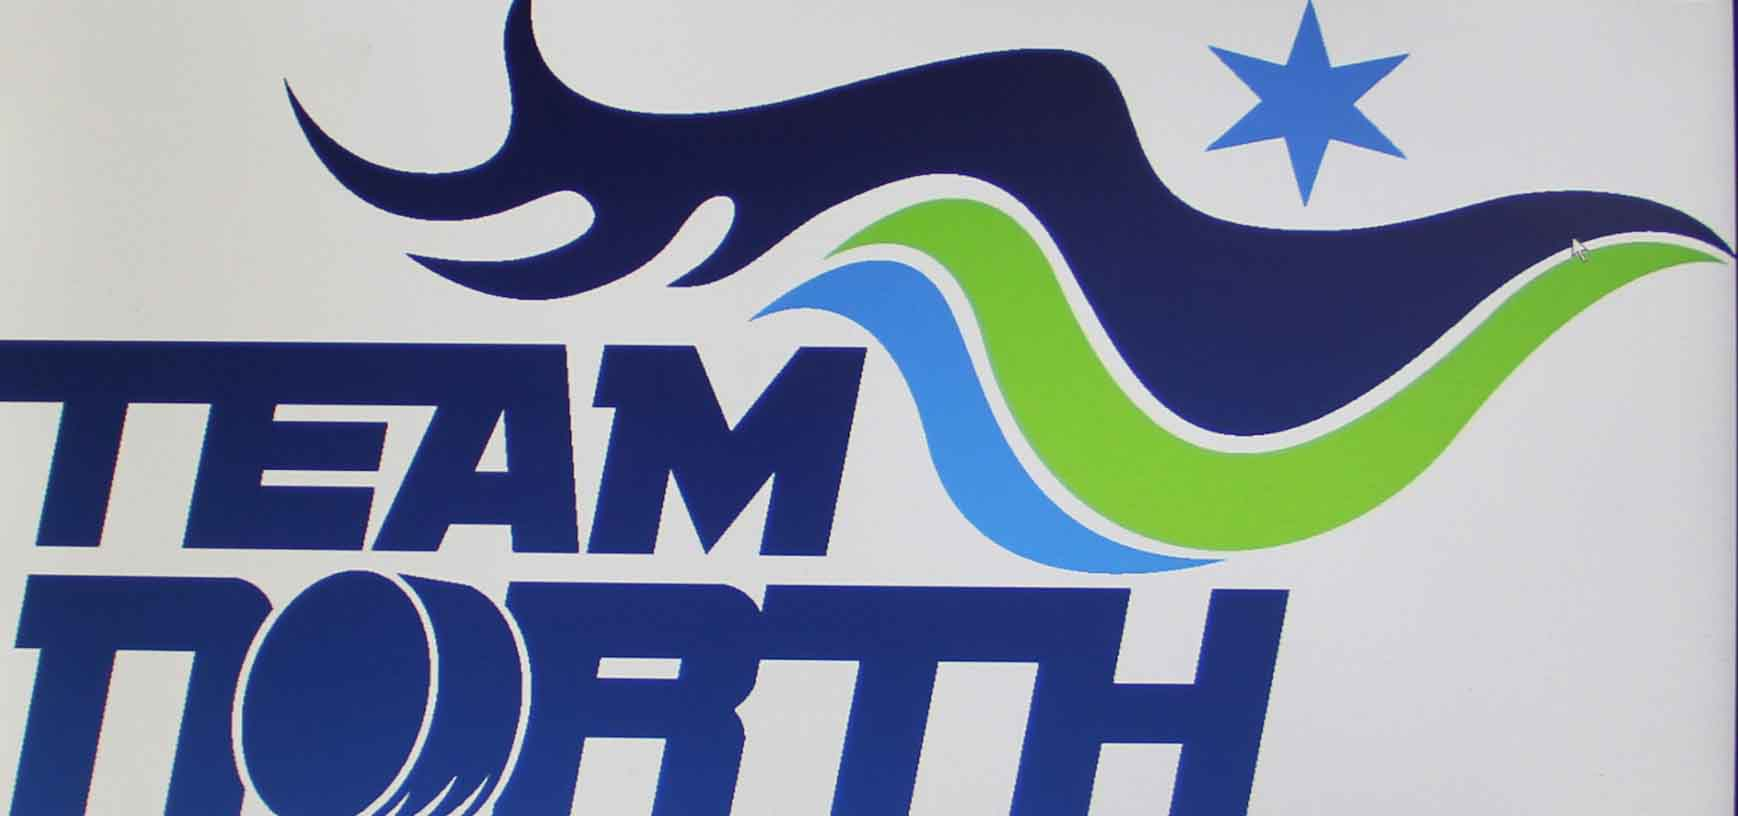 This is the logo for Team North, which is actually two teams - male and female - that will represent the NWT, Yukon and Nunavut at the upcoming National Aboriginal Hockey Championships. Image courtesy of Aboriginal Sports Circle NWT